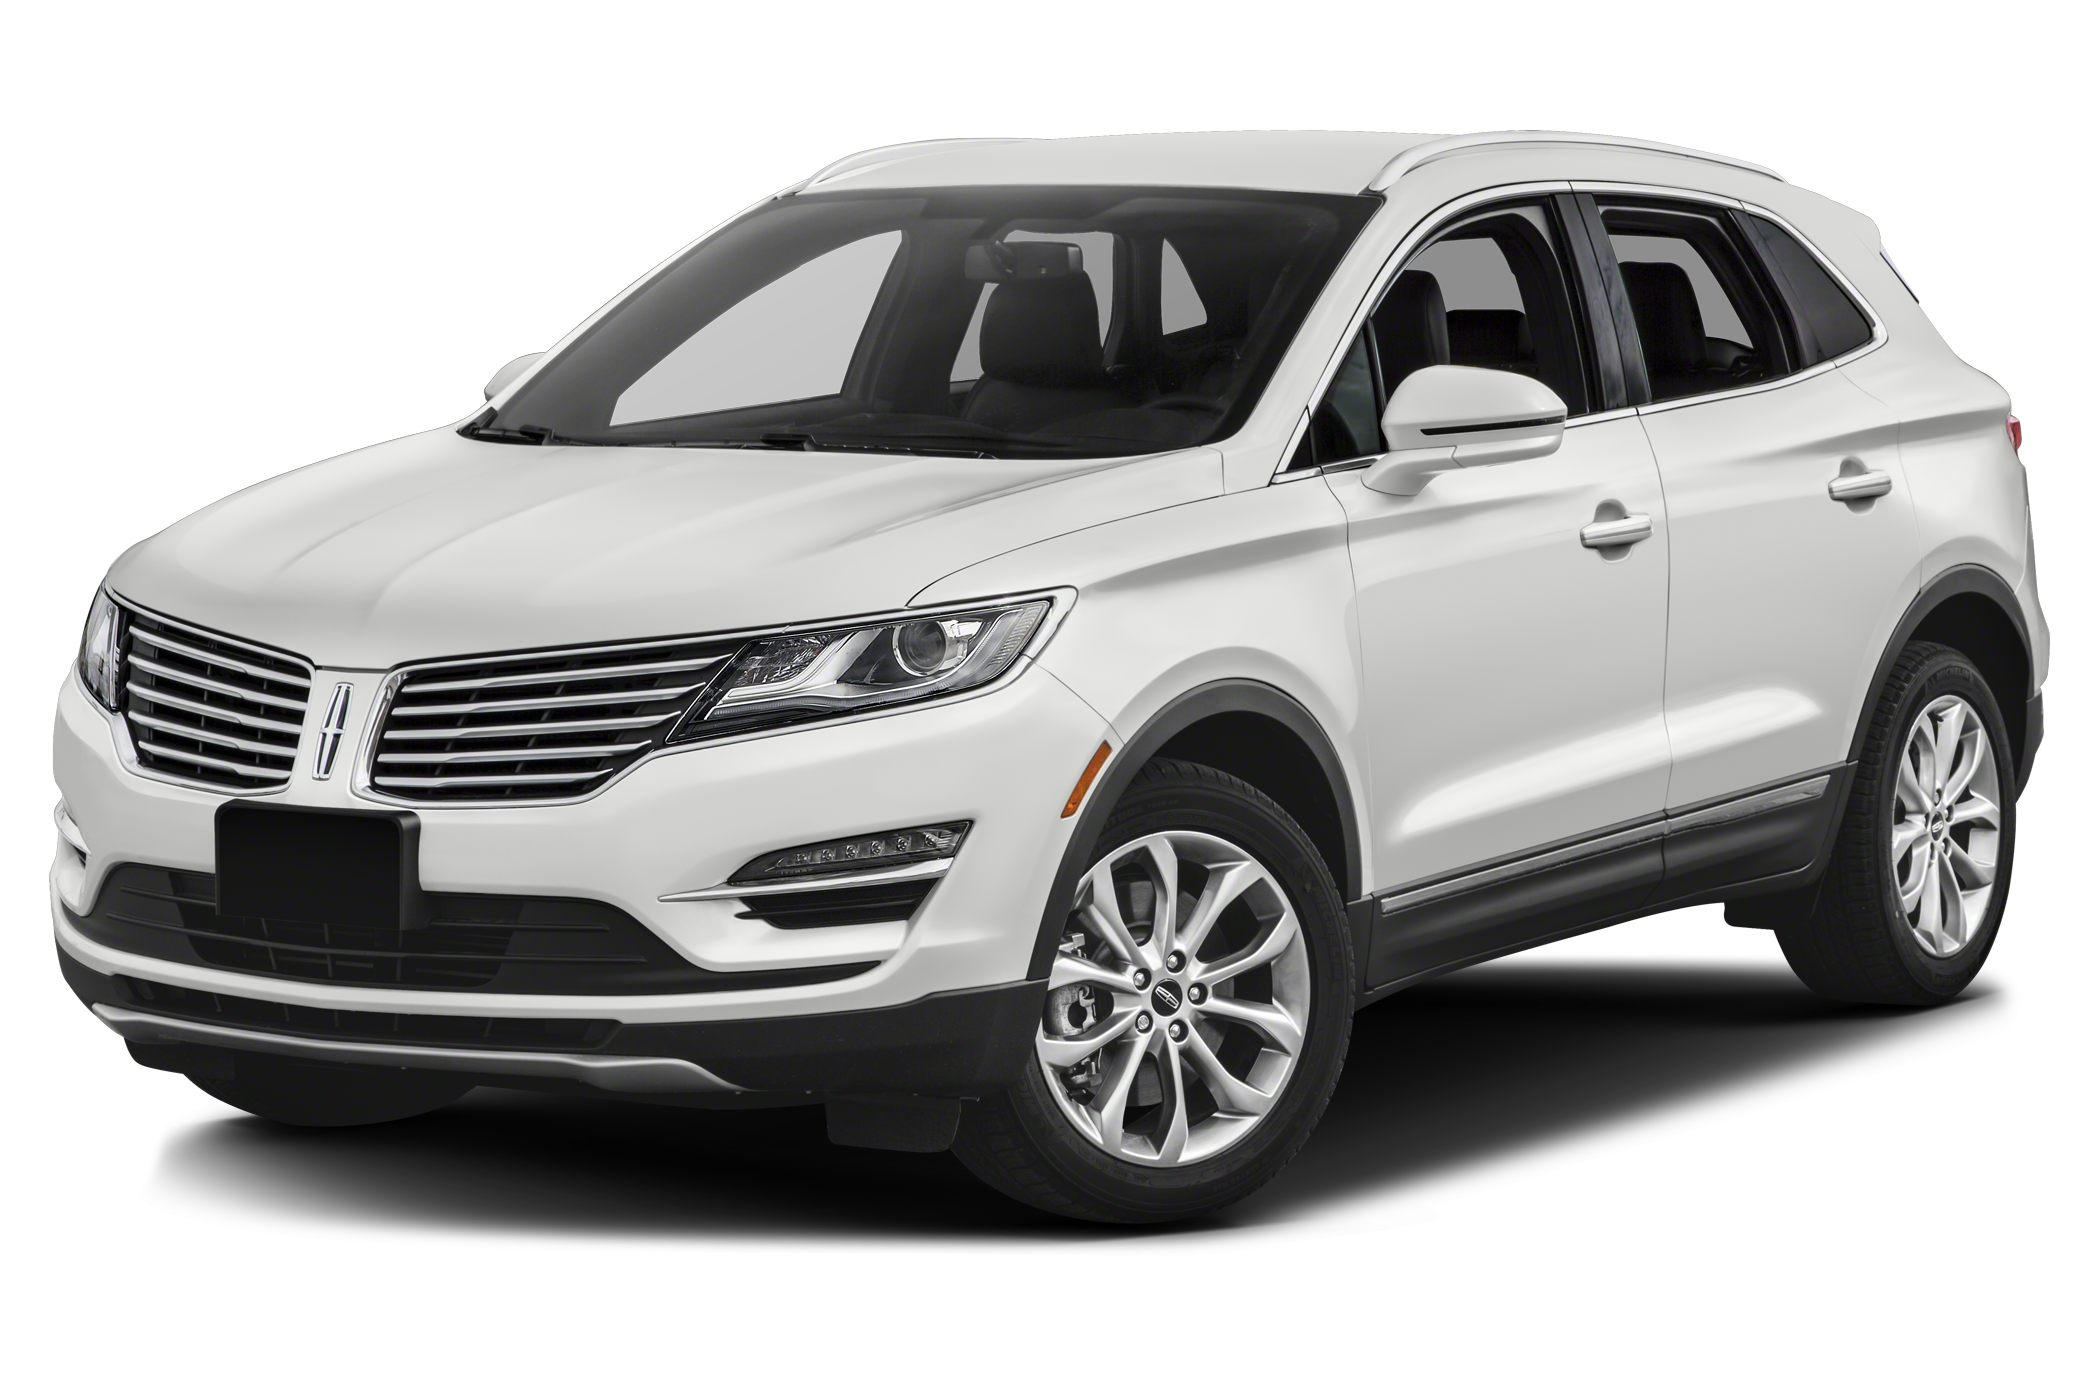 2018 lincoln mkc dimensions pictures